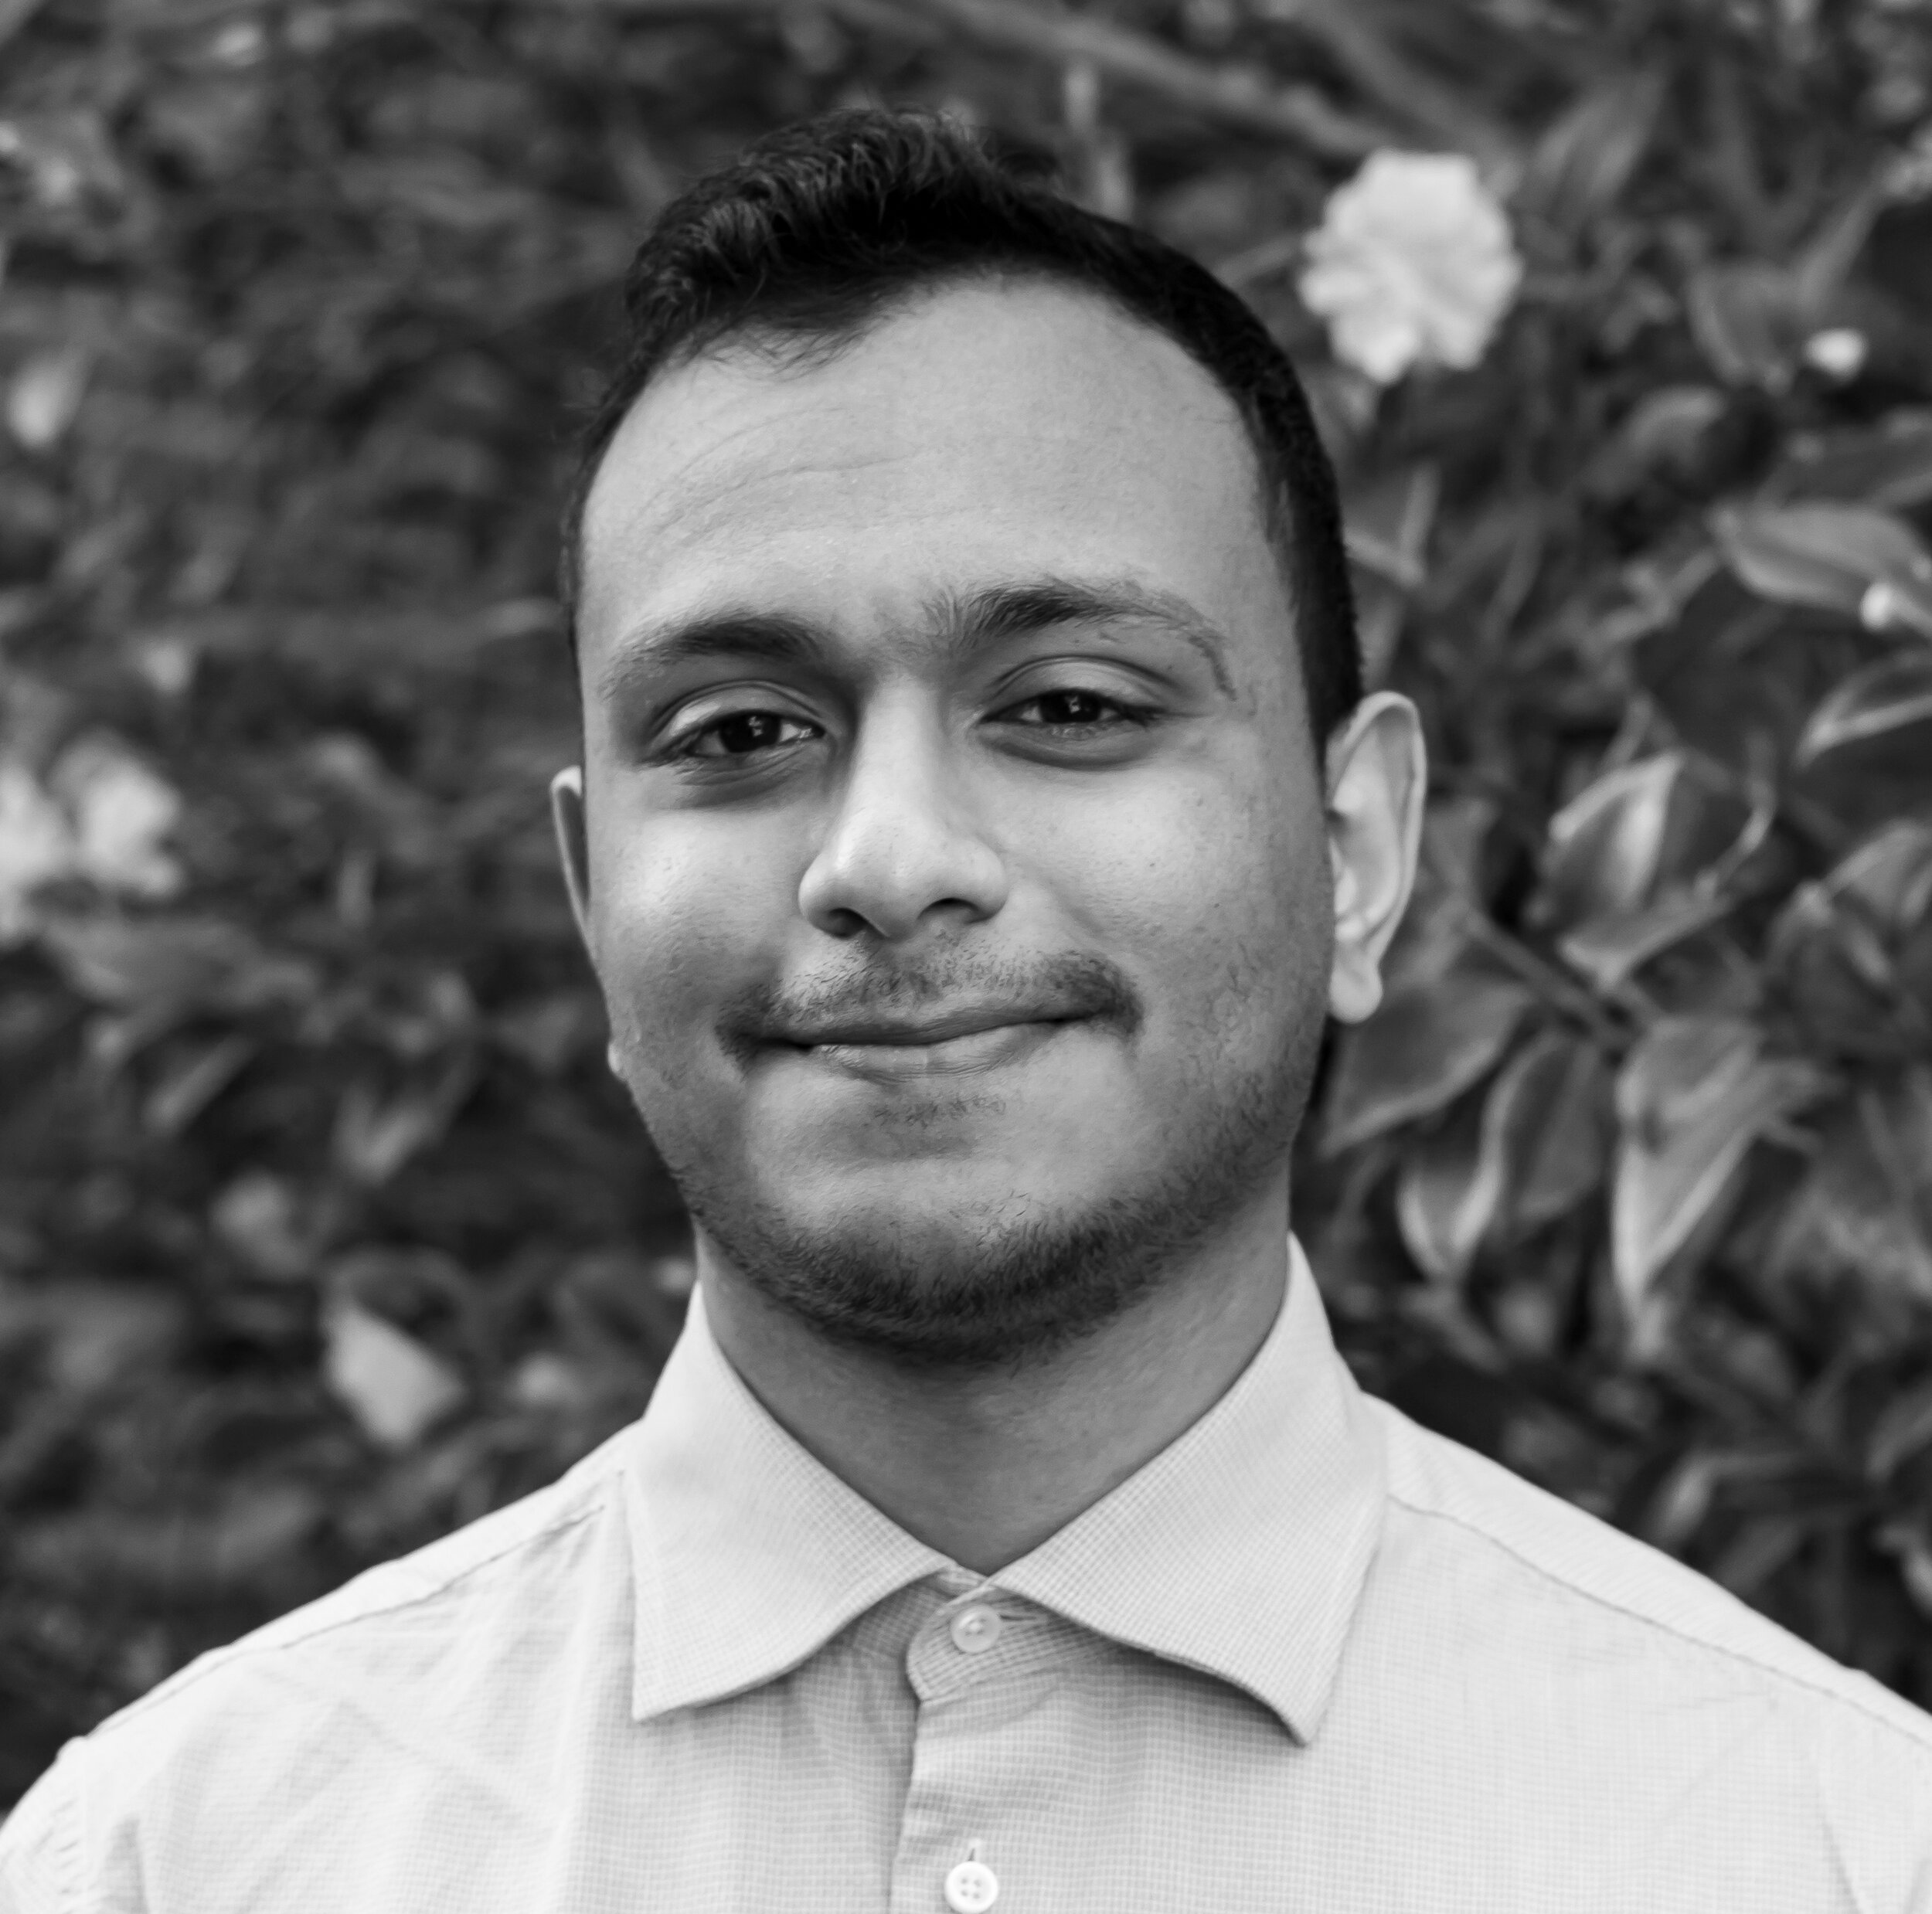 Yohan Samuel Jose   Operations Manager  With a distinct attention to detail, an eagerness to learn, and a passion for marketing, Yohan joins the Sleeptite team as the Operations Manager to build, structure and organise the multi-layered process of product development.  Coming from a solid background in sales, marketing and organisational administration, he oversees all of Sleeptite's sales projects and client relationships - both locally and internationally.